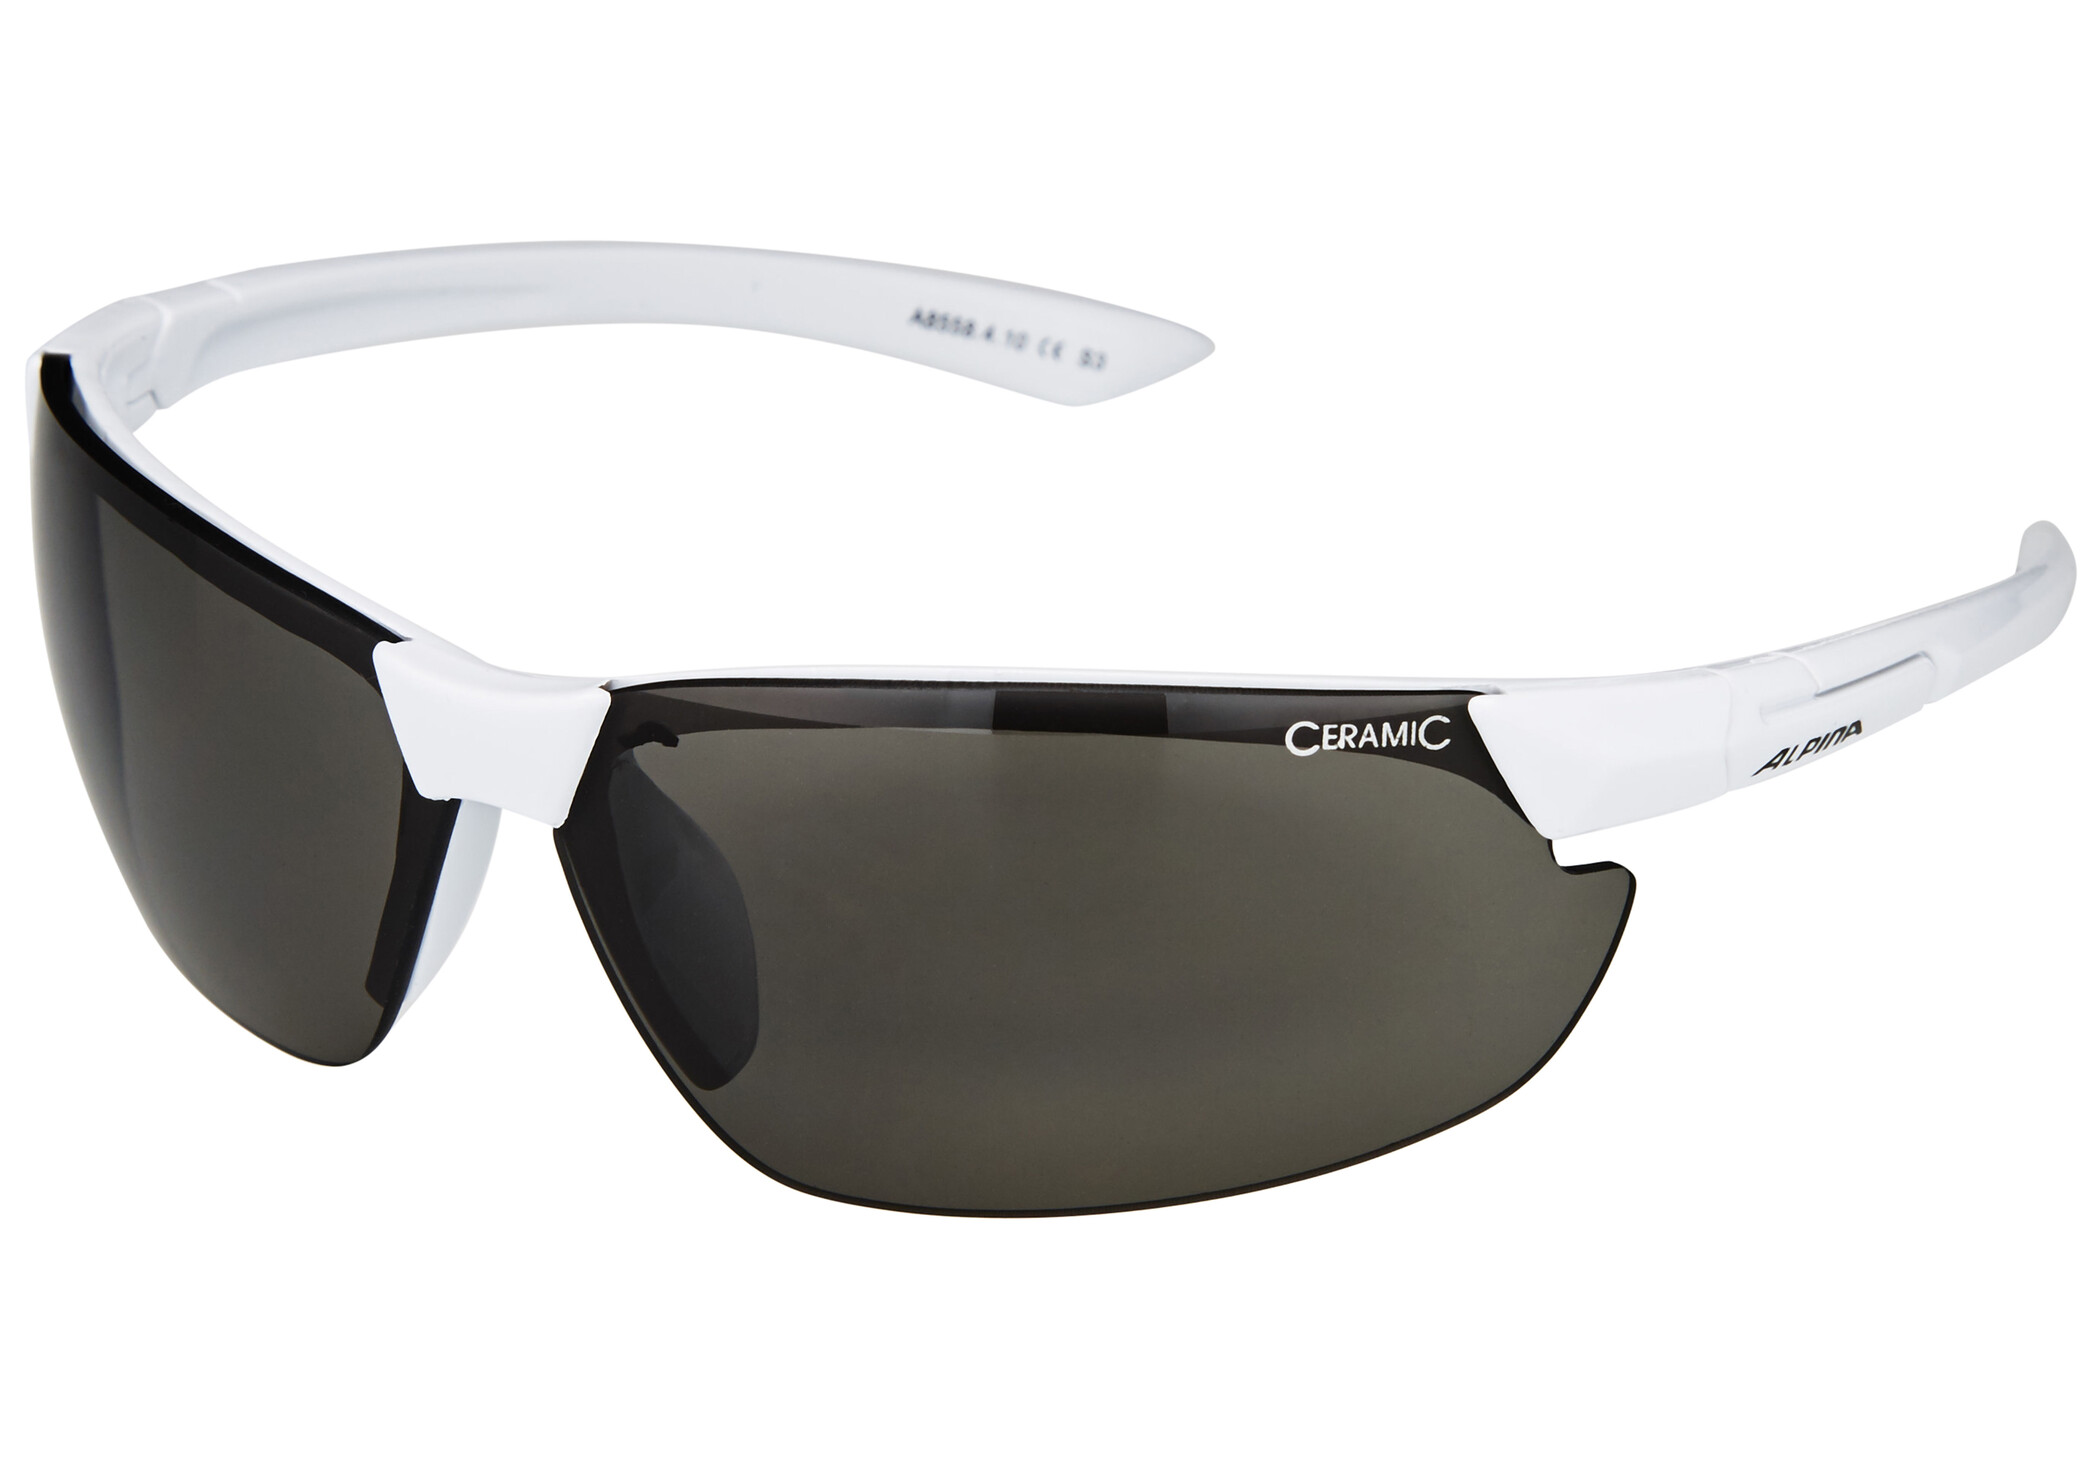 Alpina Draff Cykelbriller, white/black (2019) | Glasses